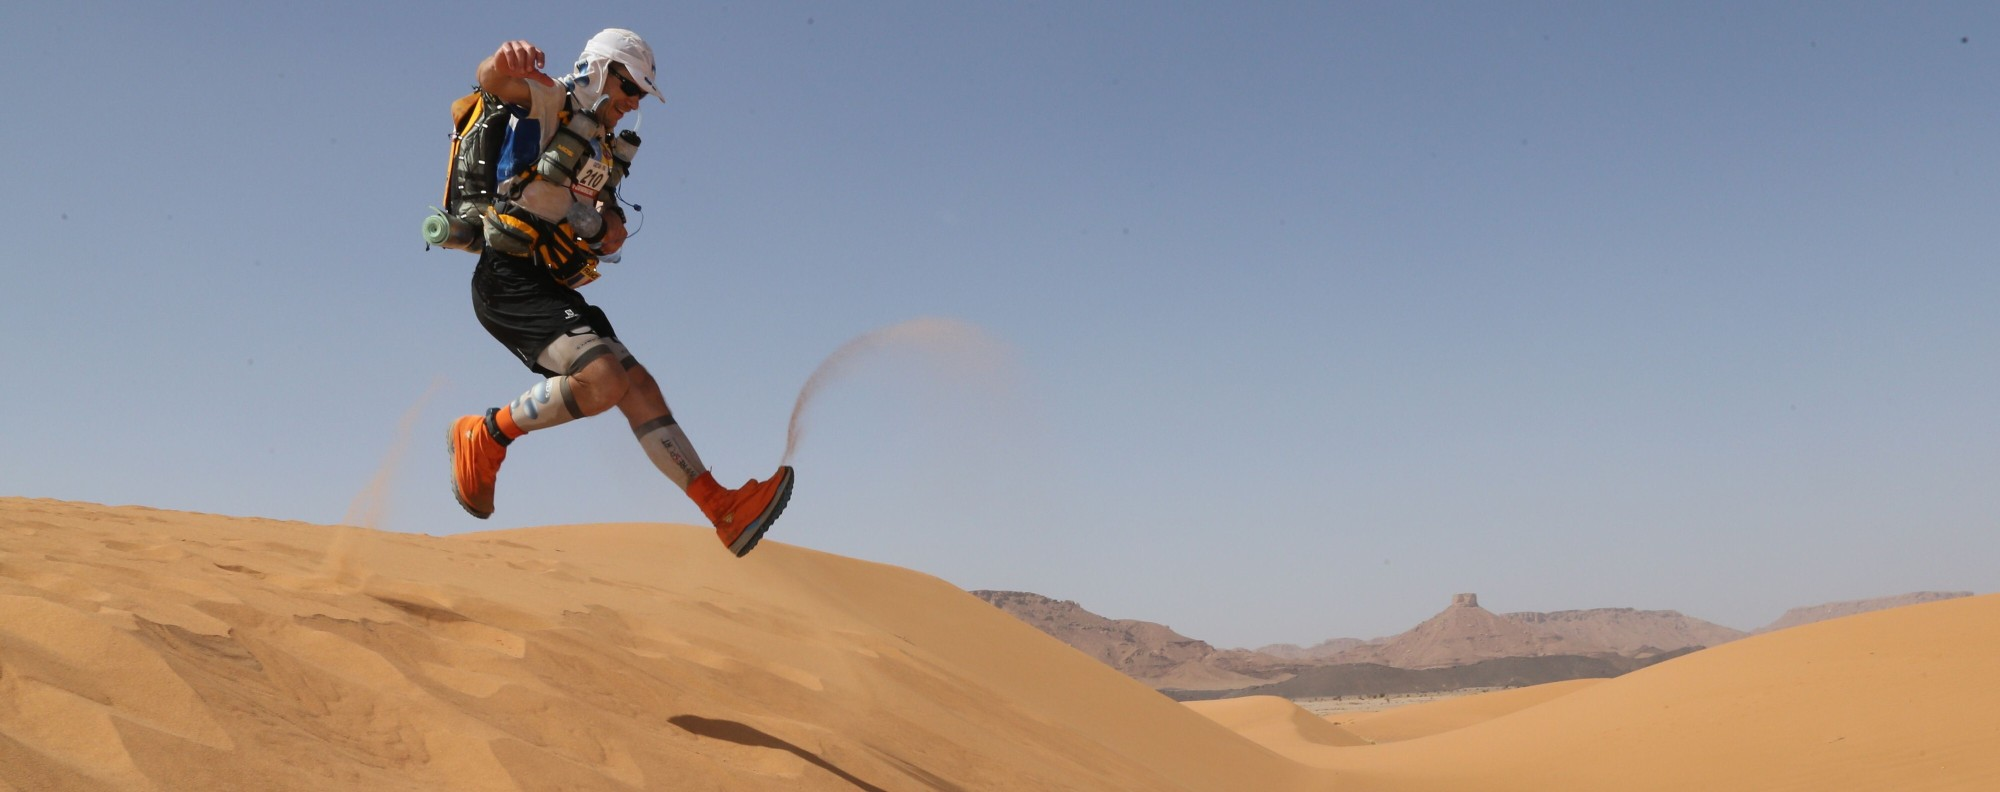 The Marathon des Sables is one of the most famous multi-day races in the world. Photo: AFP